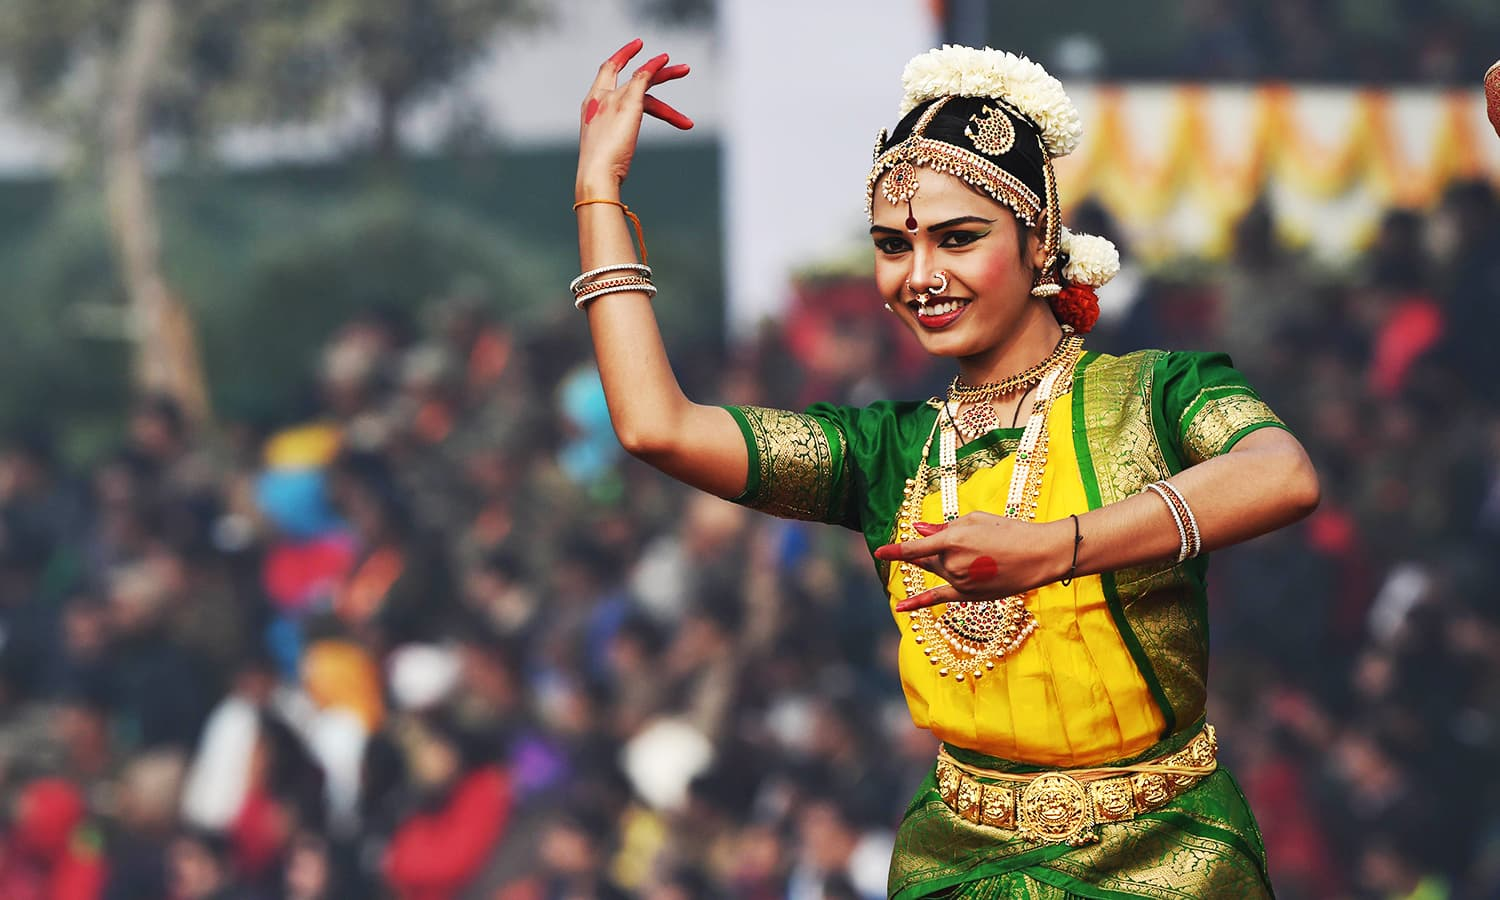 An Indian dancer performs on a float during India's Republic Day parade. ─ AFP